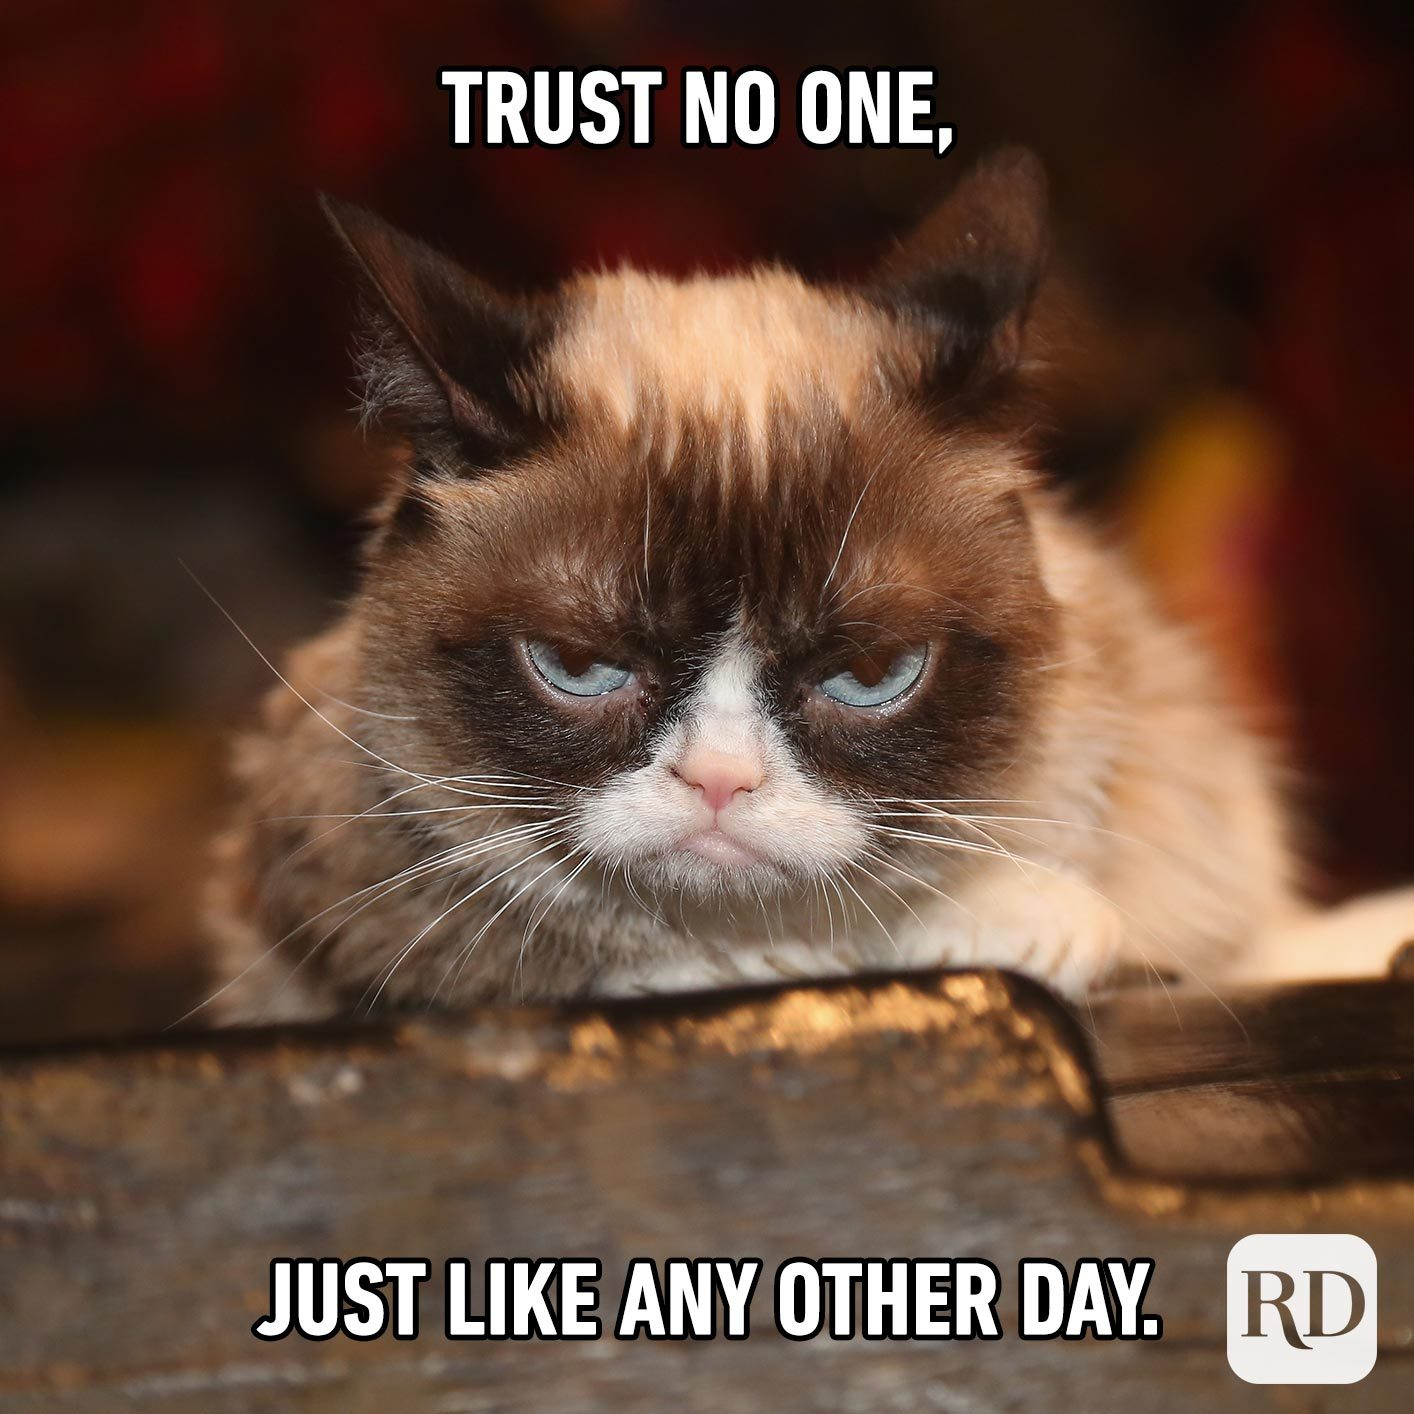 Grumpy cat. Meme text: Trust no one, just like any other day.